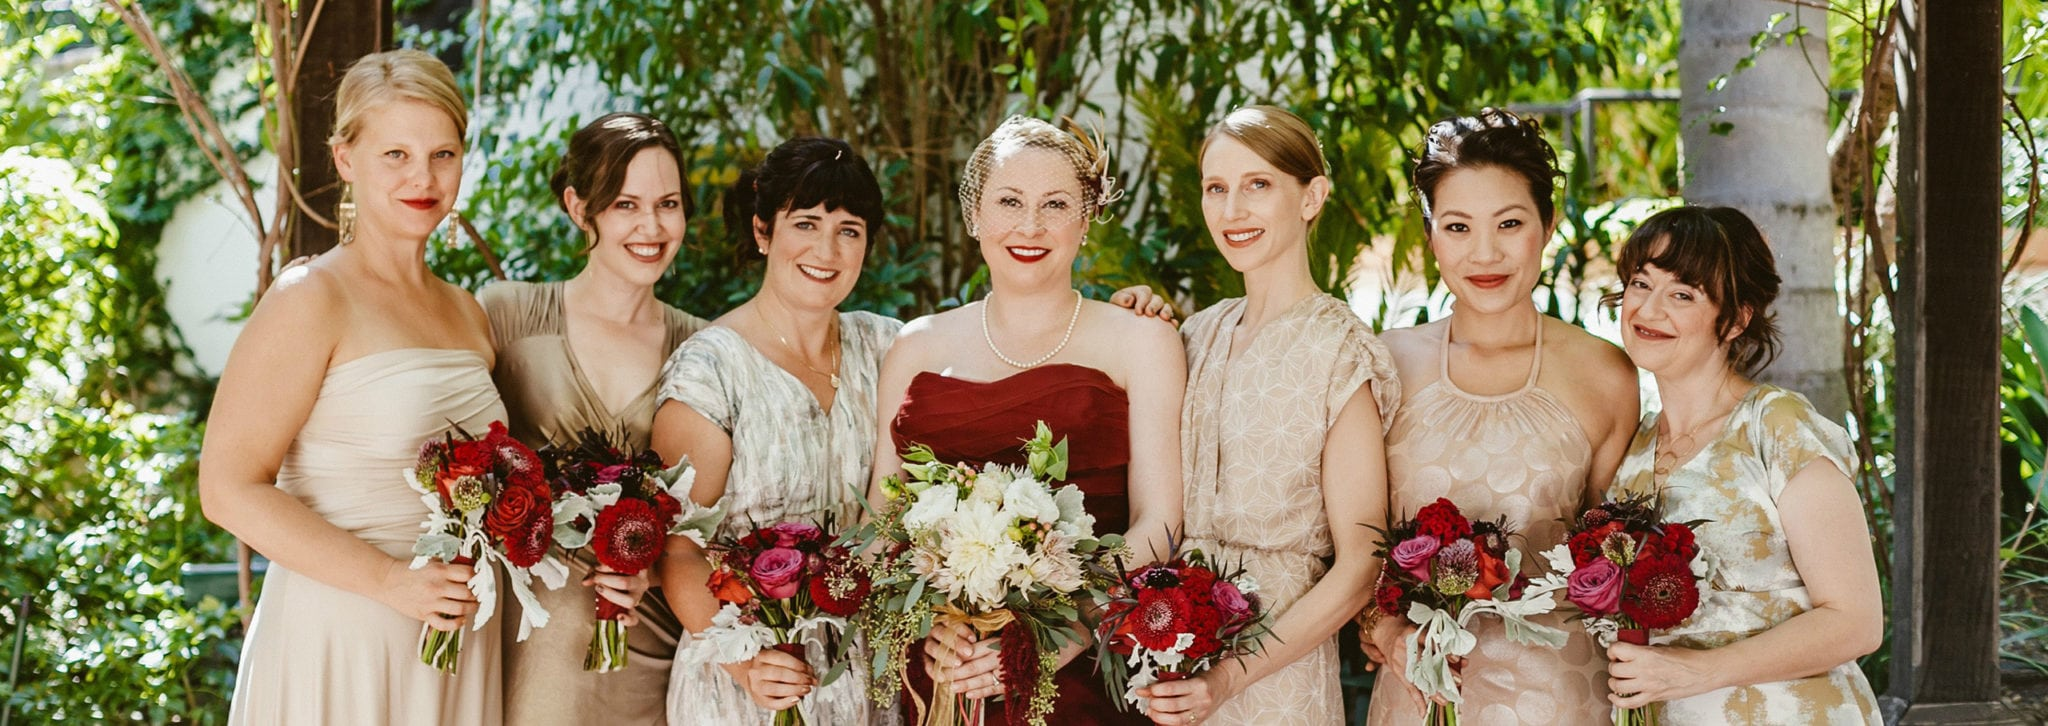 Custom Bride and Bridesmaid Dresses